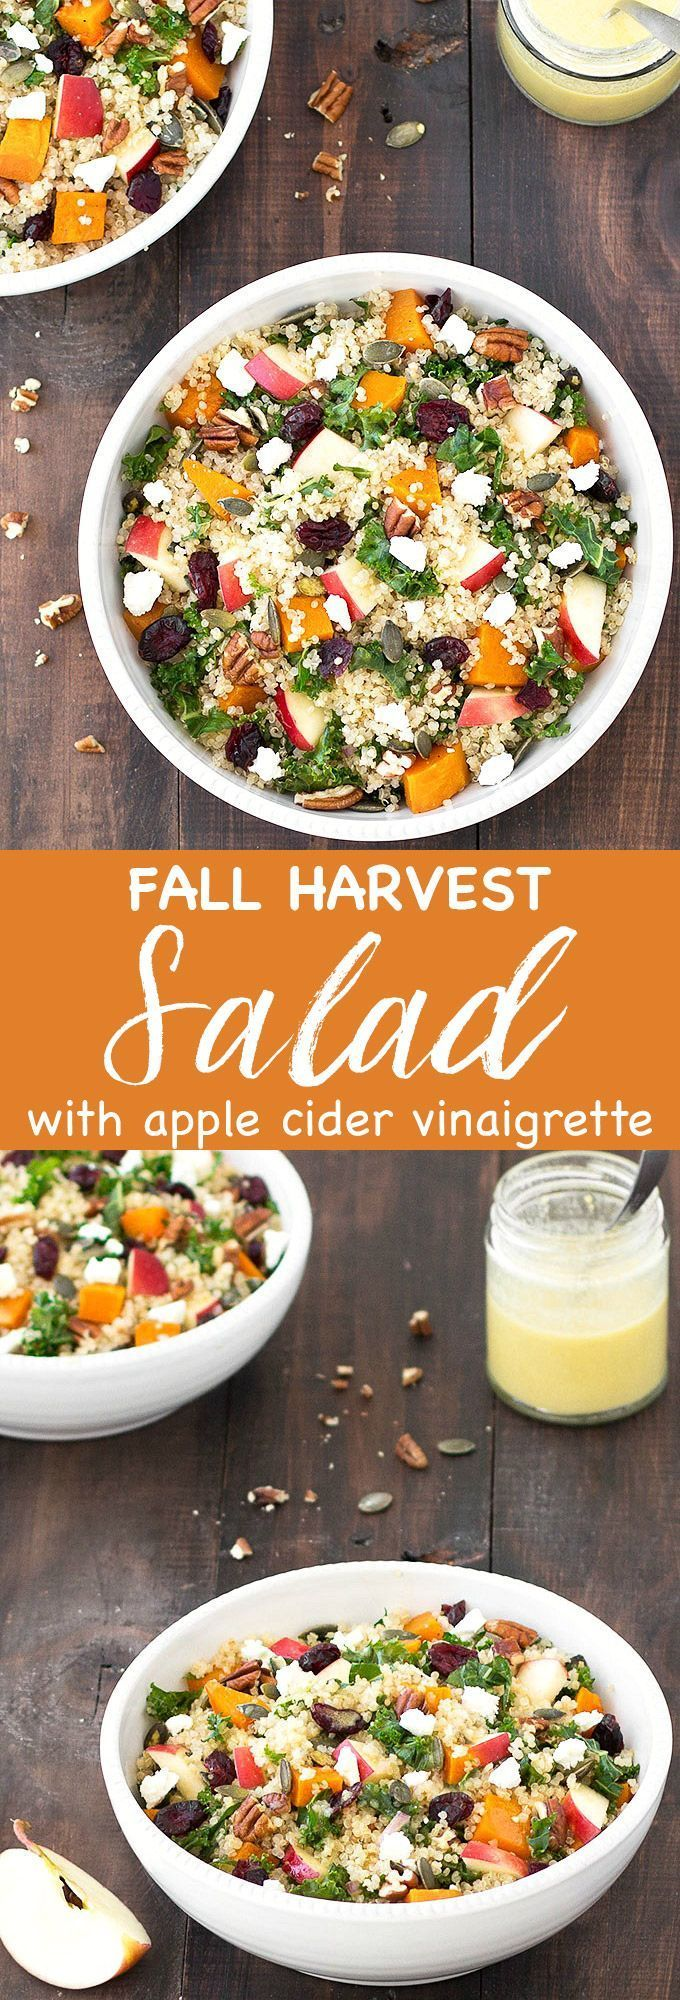 This fall harvest salad with apple cider vinaigrette is comforting, filling, colorful, and tastes absolutely amazing! It combines so many great textures and autumn flavors: roasted butternut squash, crunchy pumpkin seeds and pecans, crumbled feta cheese,